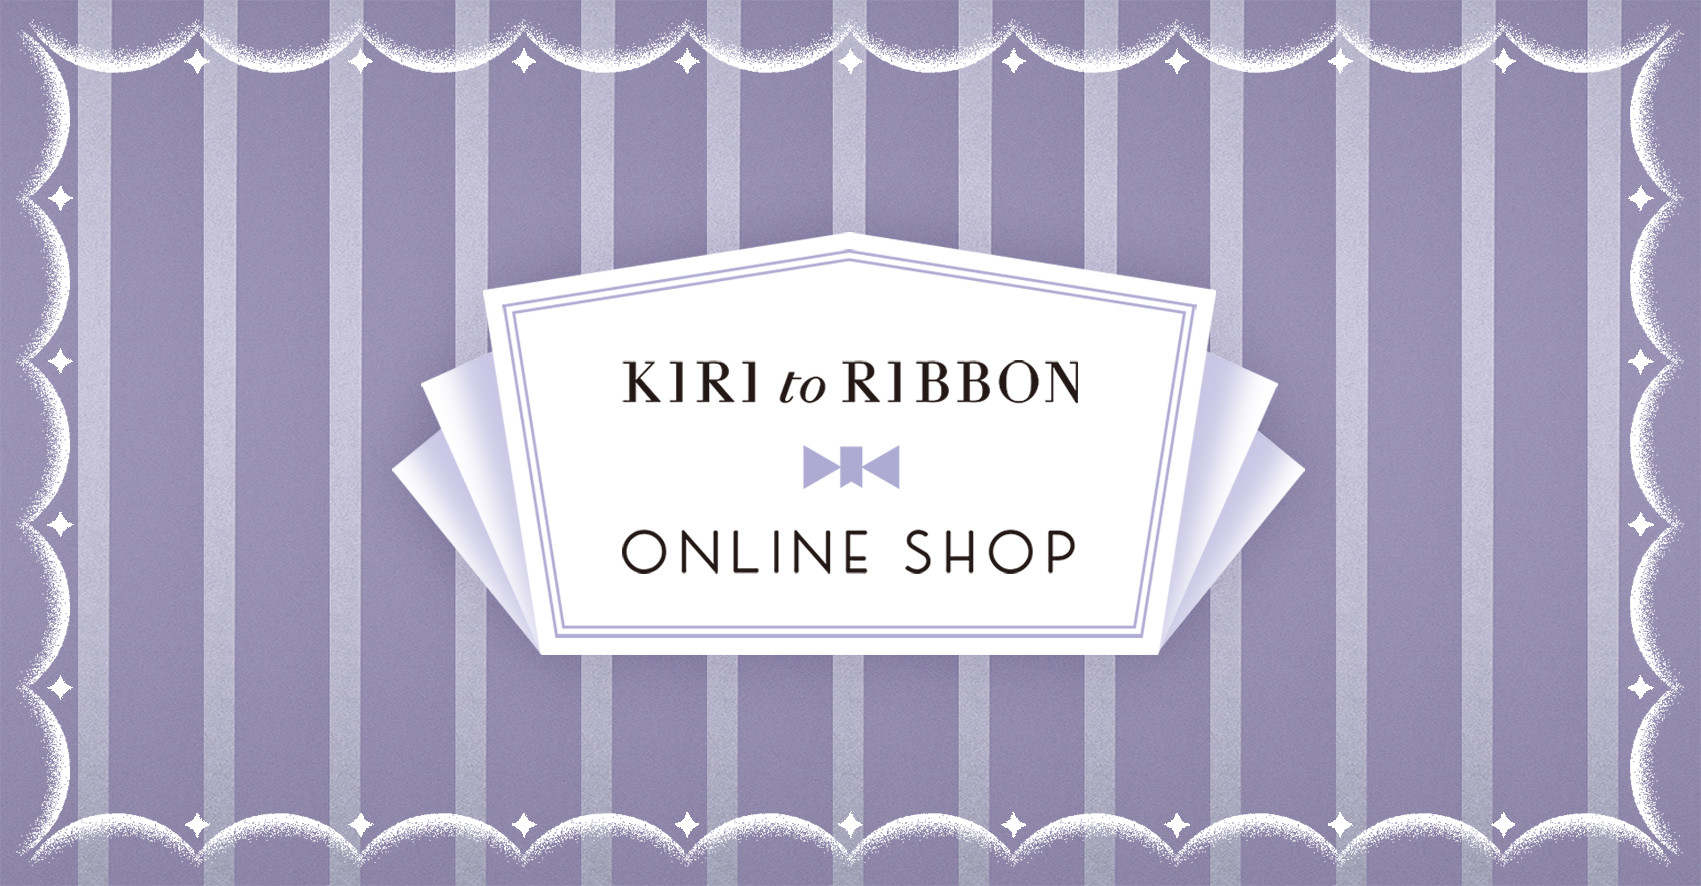 KIRI to RIBBON